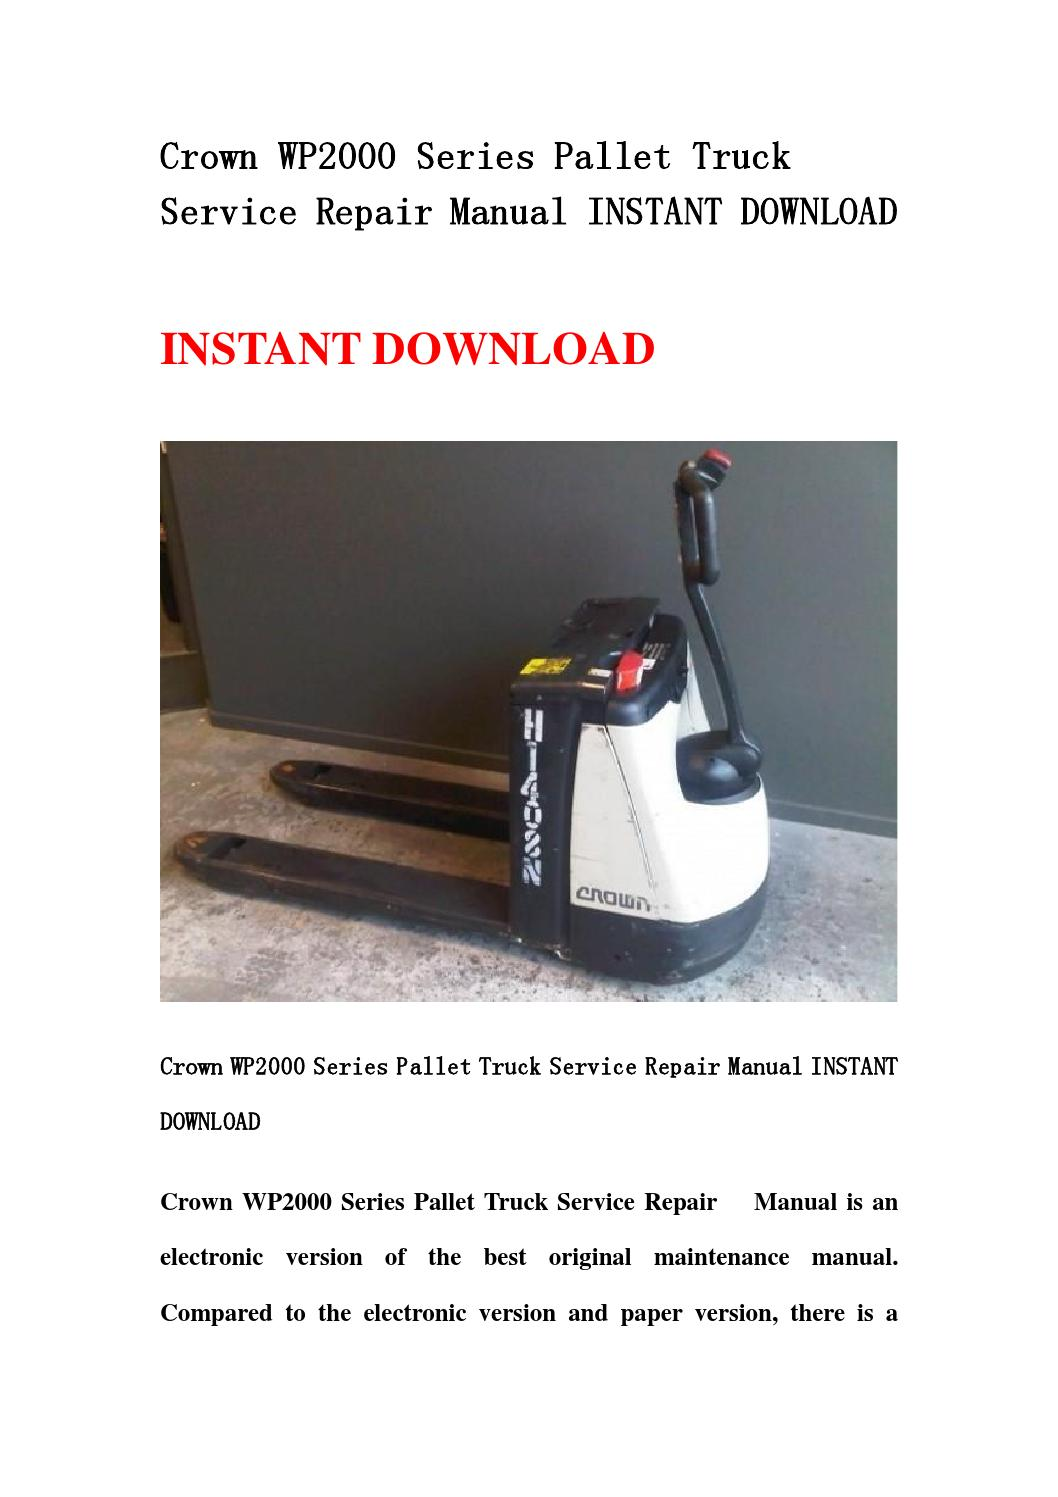 Crown wp2000 series pallet truck service repair manual instant download by  kfmjsnef - issuu